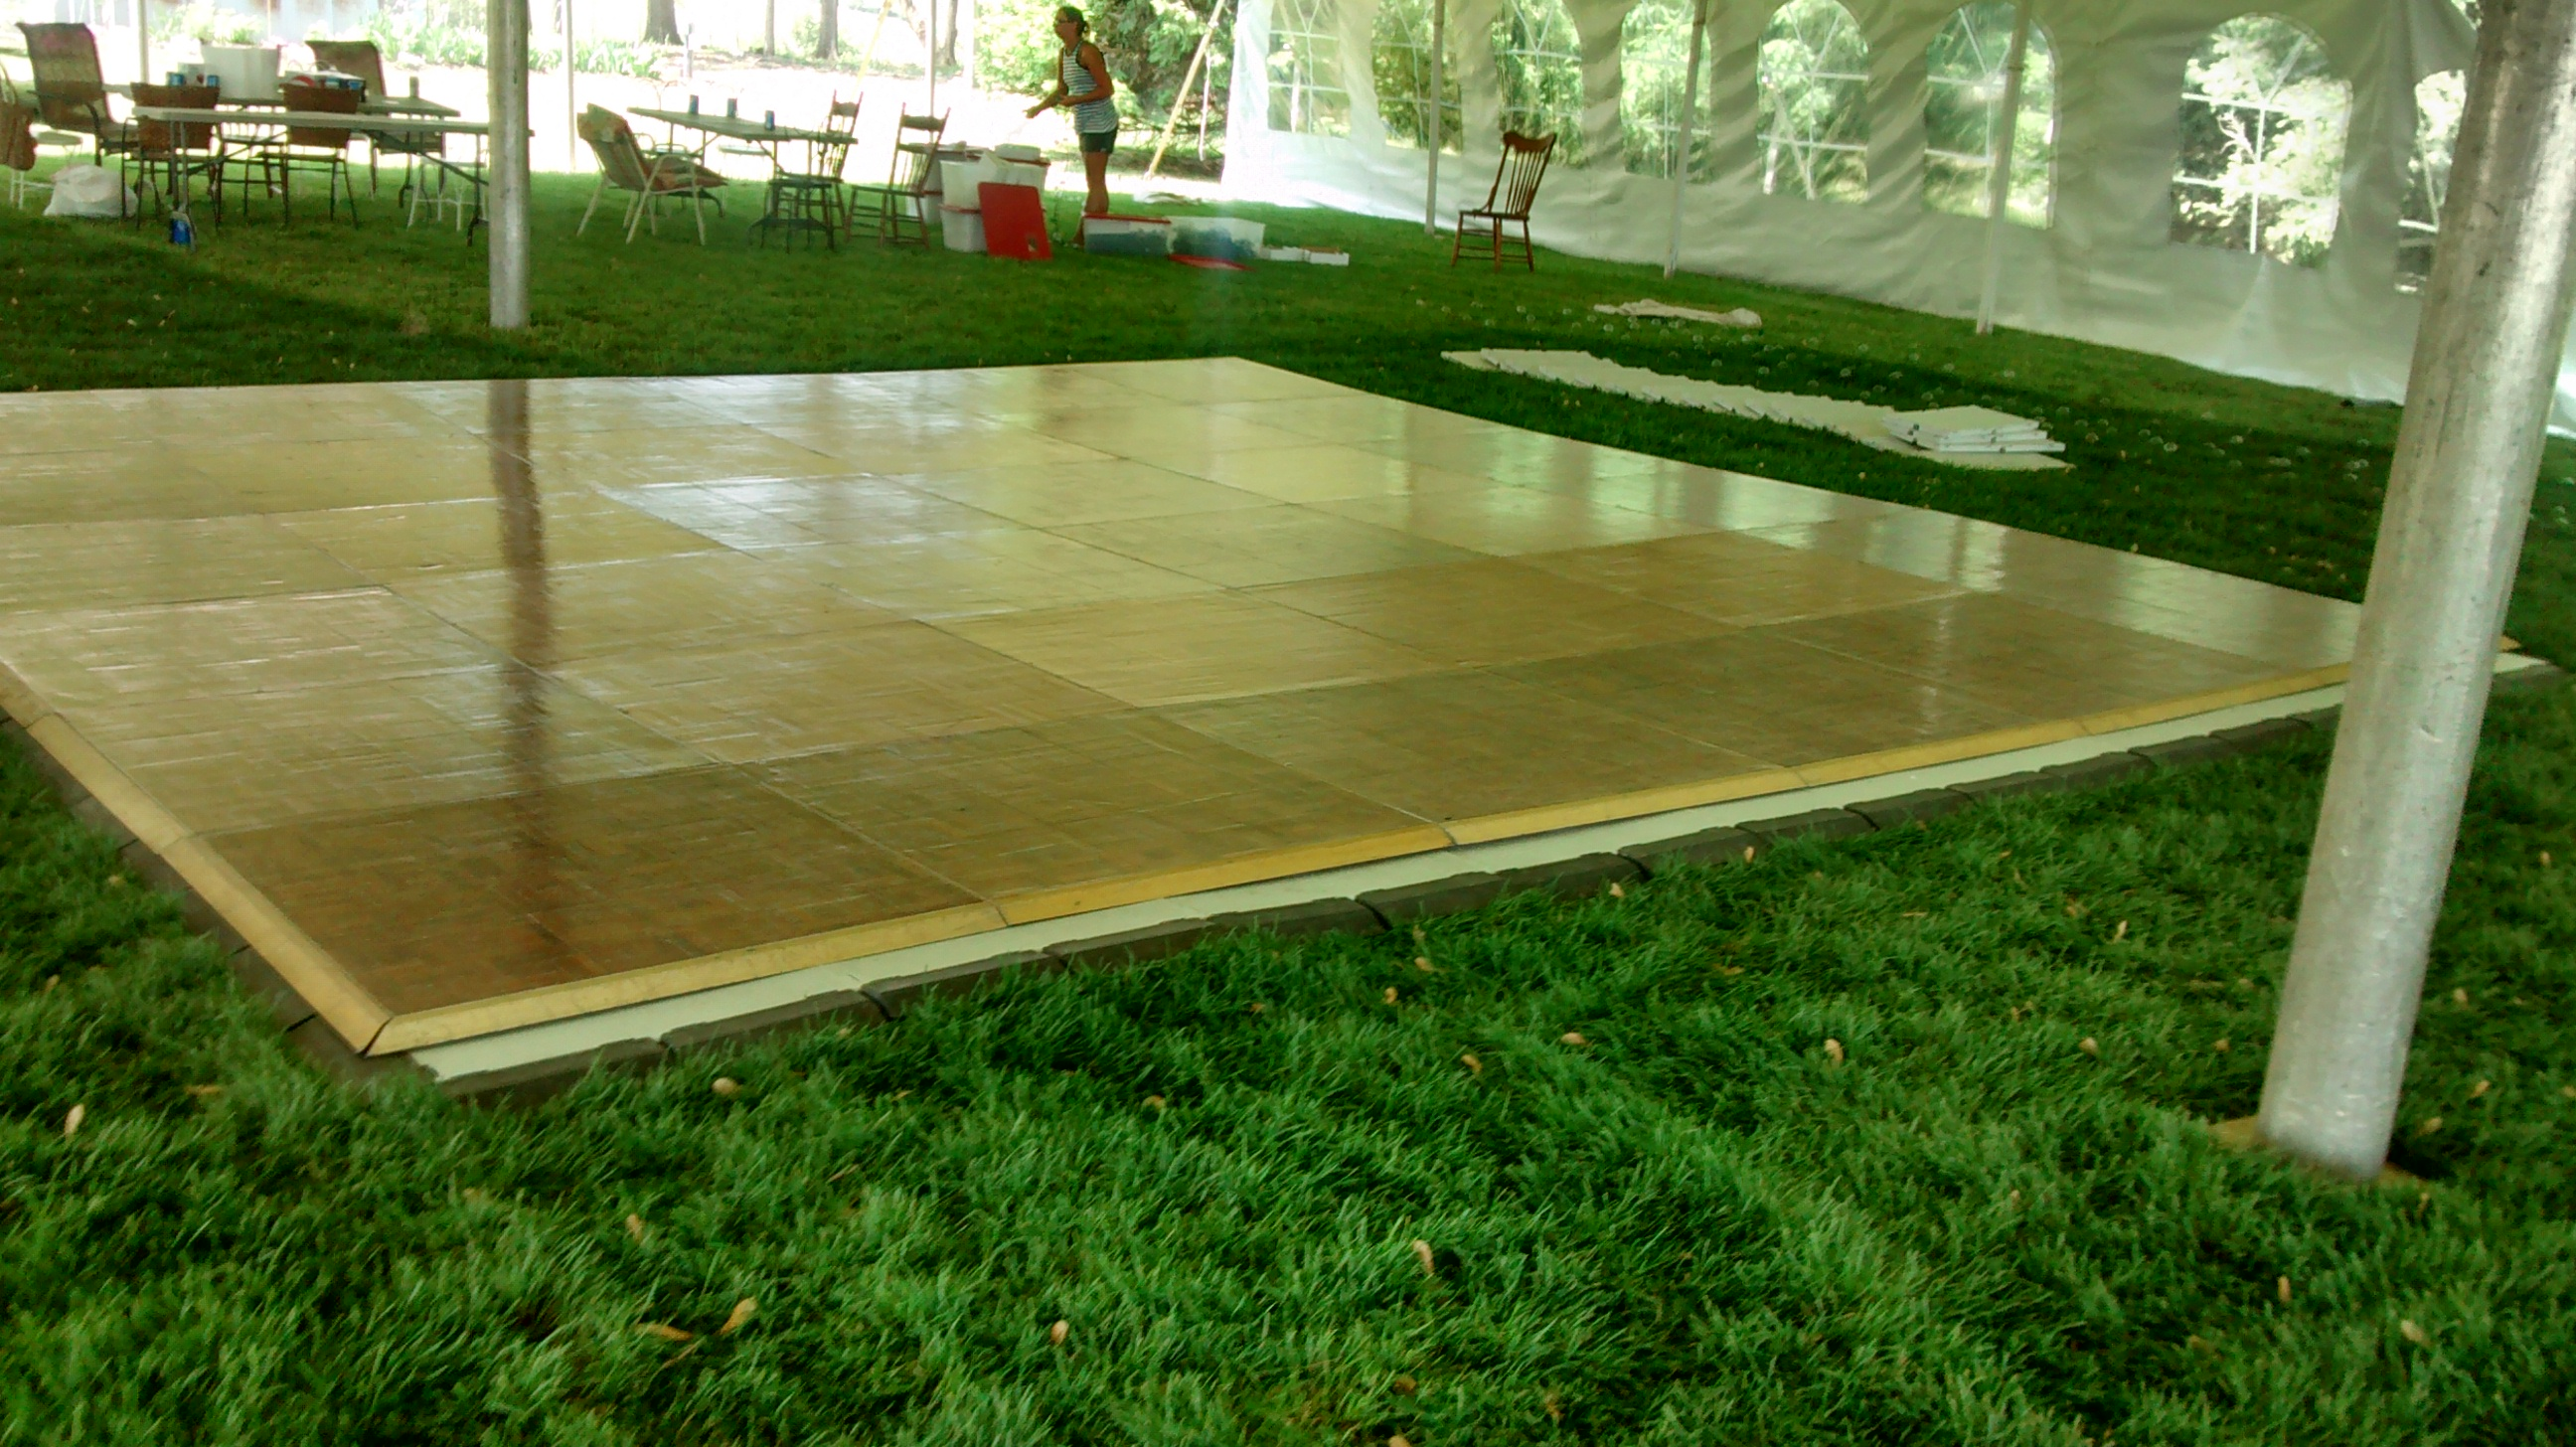 Portable Dance Floor On Carpet : Portable parquet wood flooring assembled into a